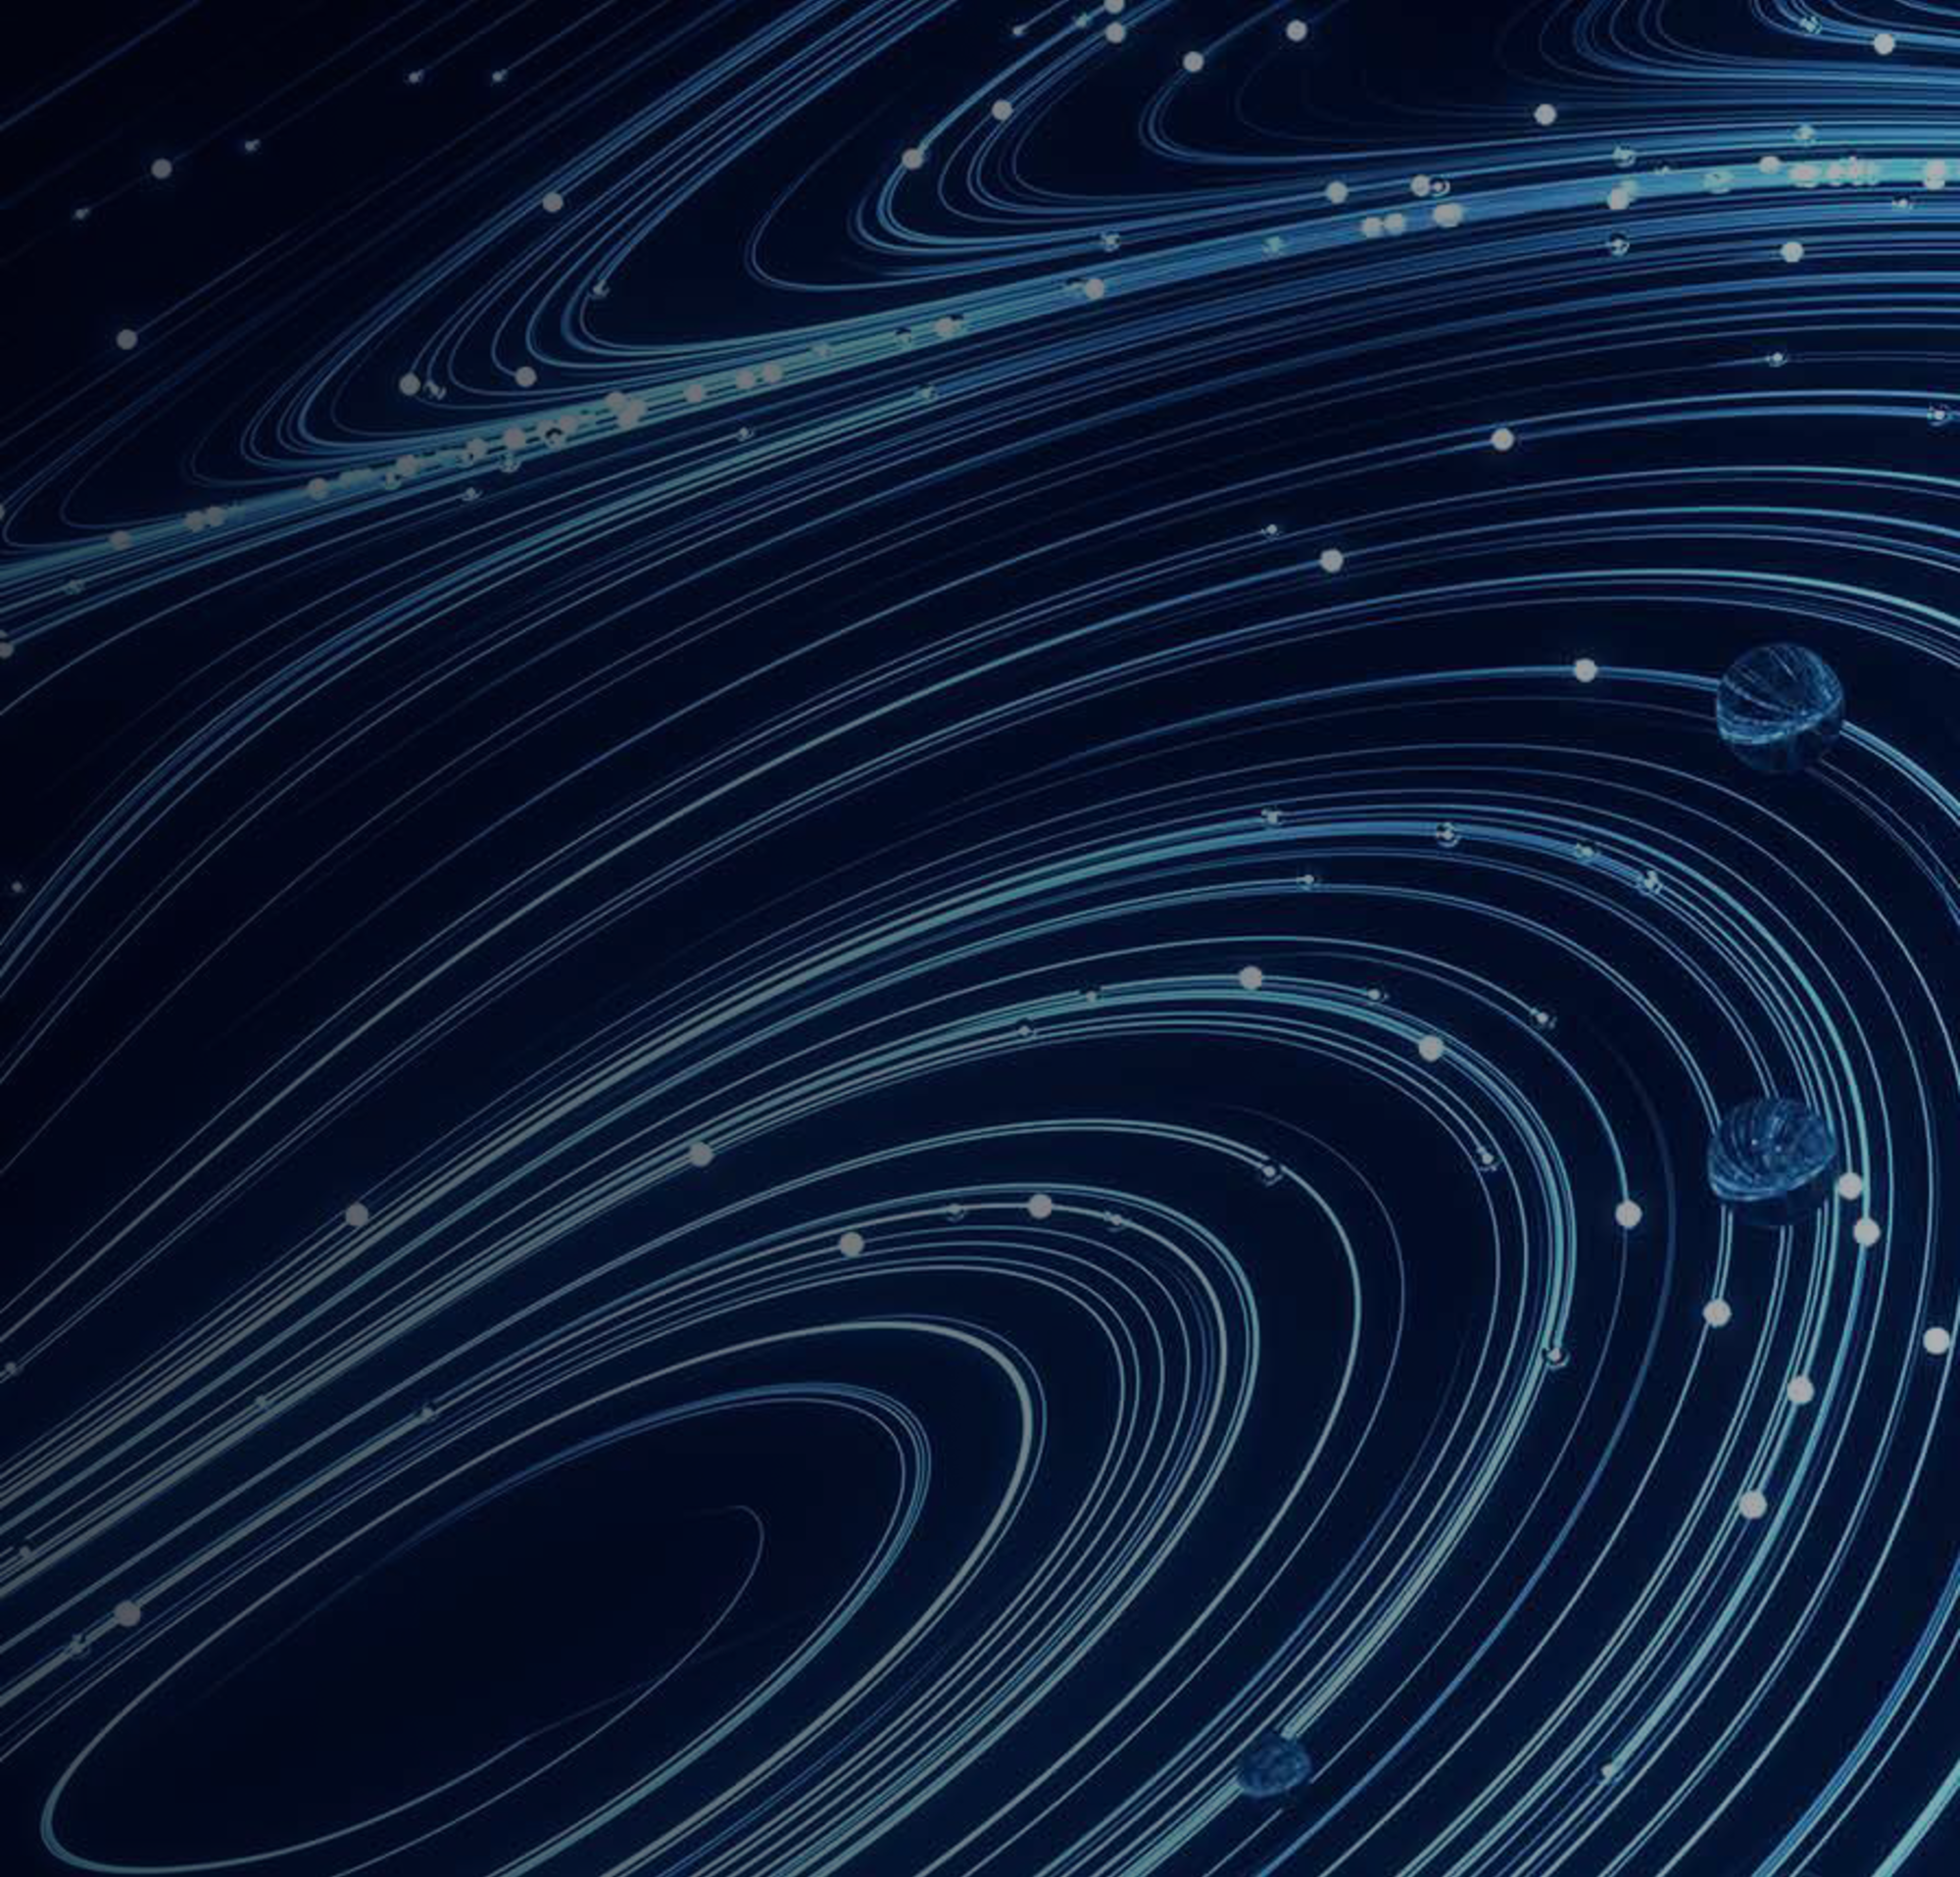 An abstract image of lines flowing to represent enterprise security.